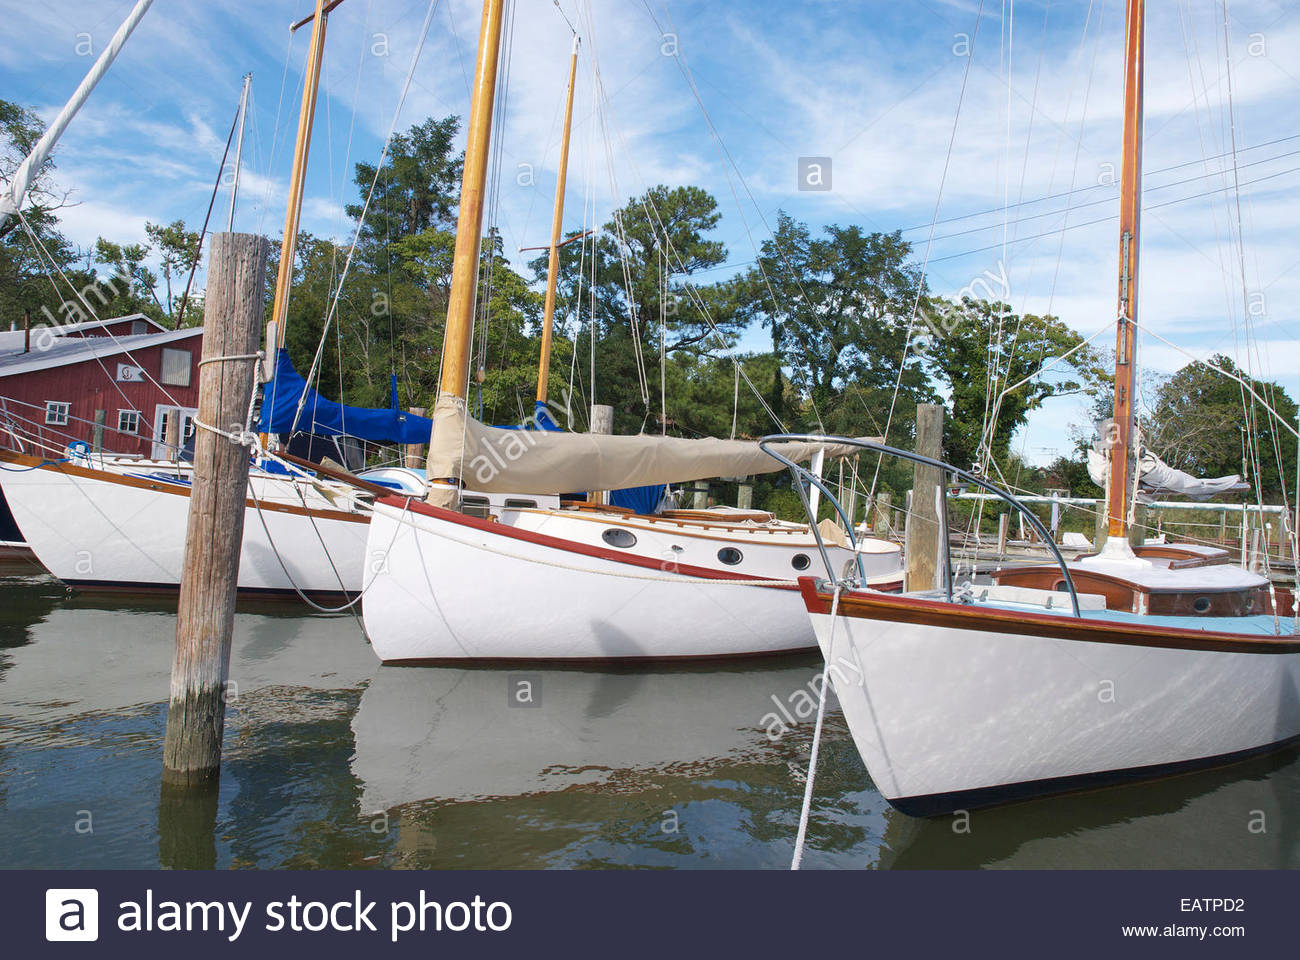 Beautiful wooden boats tied up at a marina in Maryland. - Stock Image